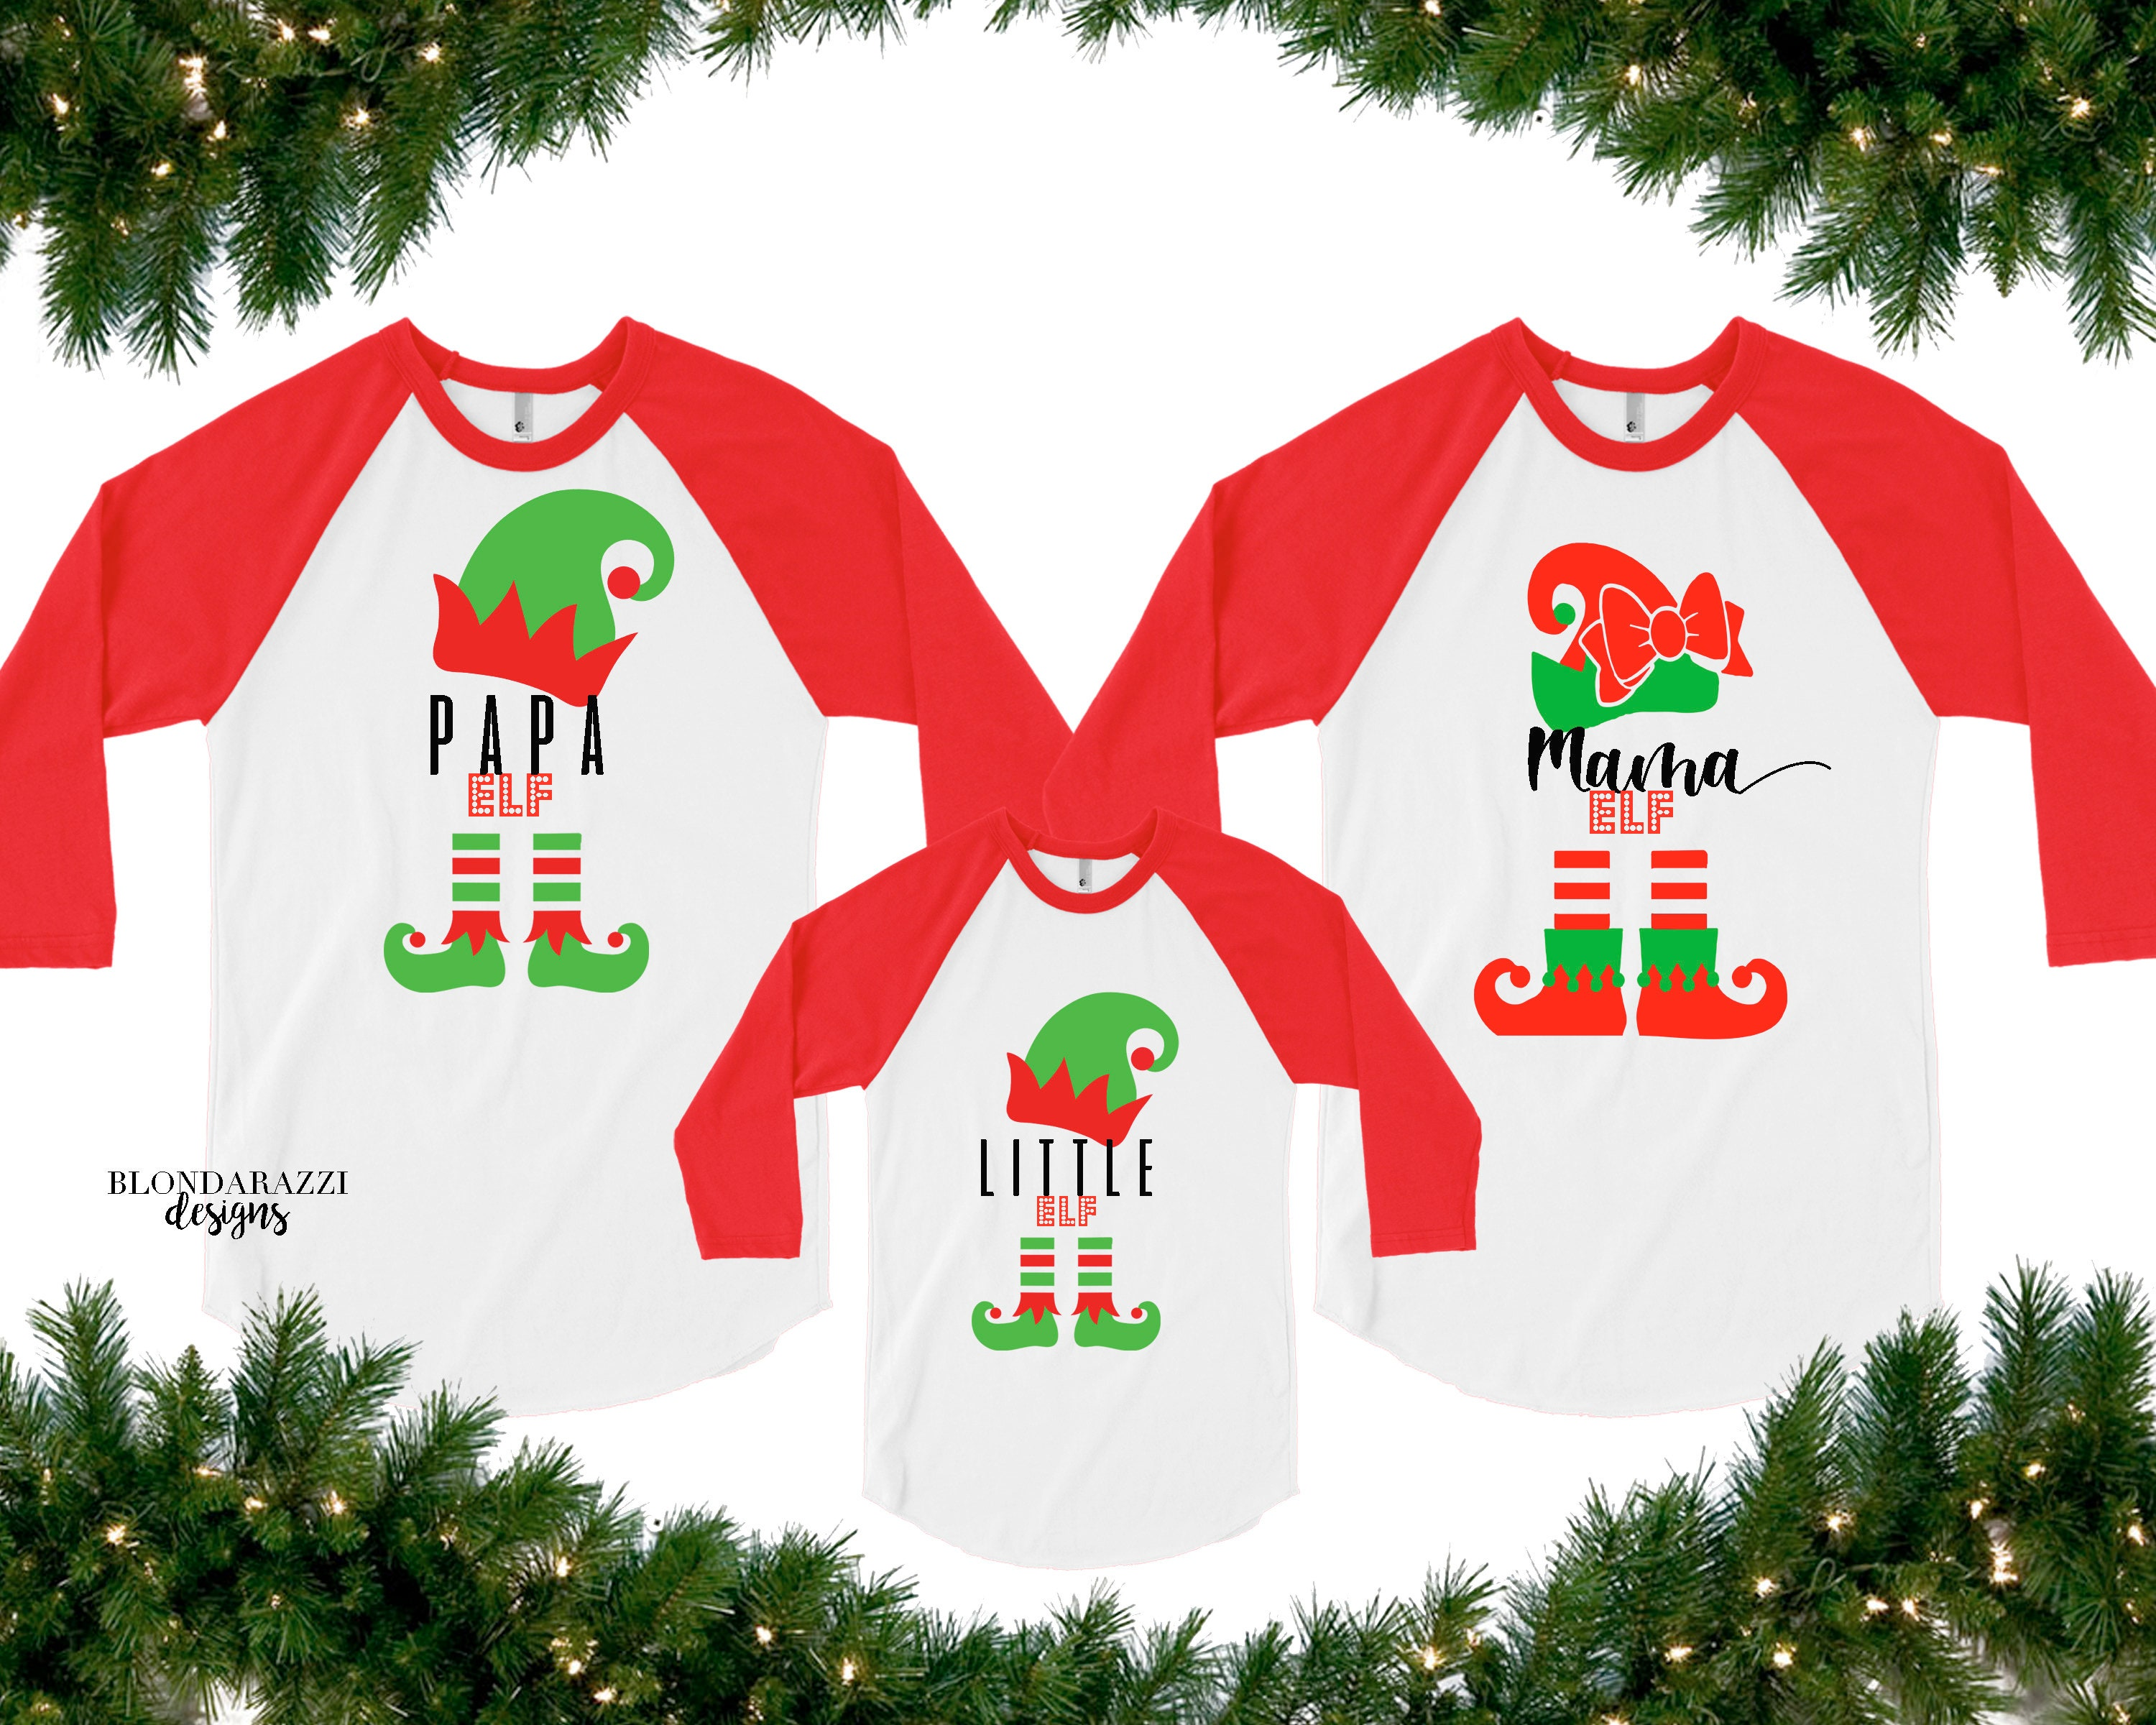 ea3ad3bc09d1 Matching Family Christmas Shirts with Elf and Personalized Names for Mom  Dad Kids Grandma Grandpa Aunt Uncle Cousin and all Relatives